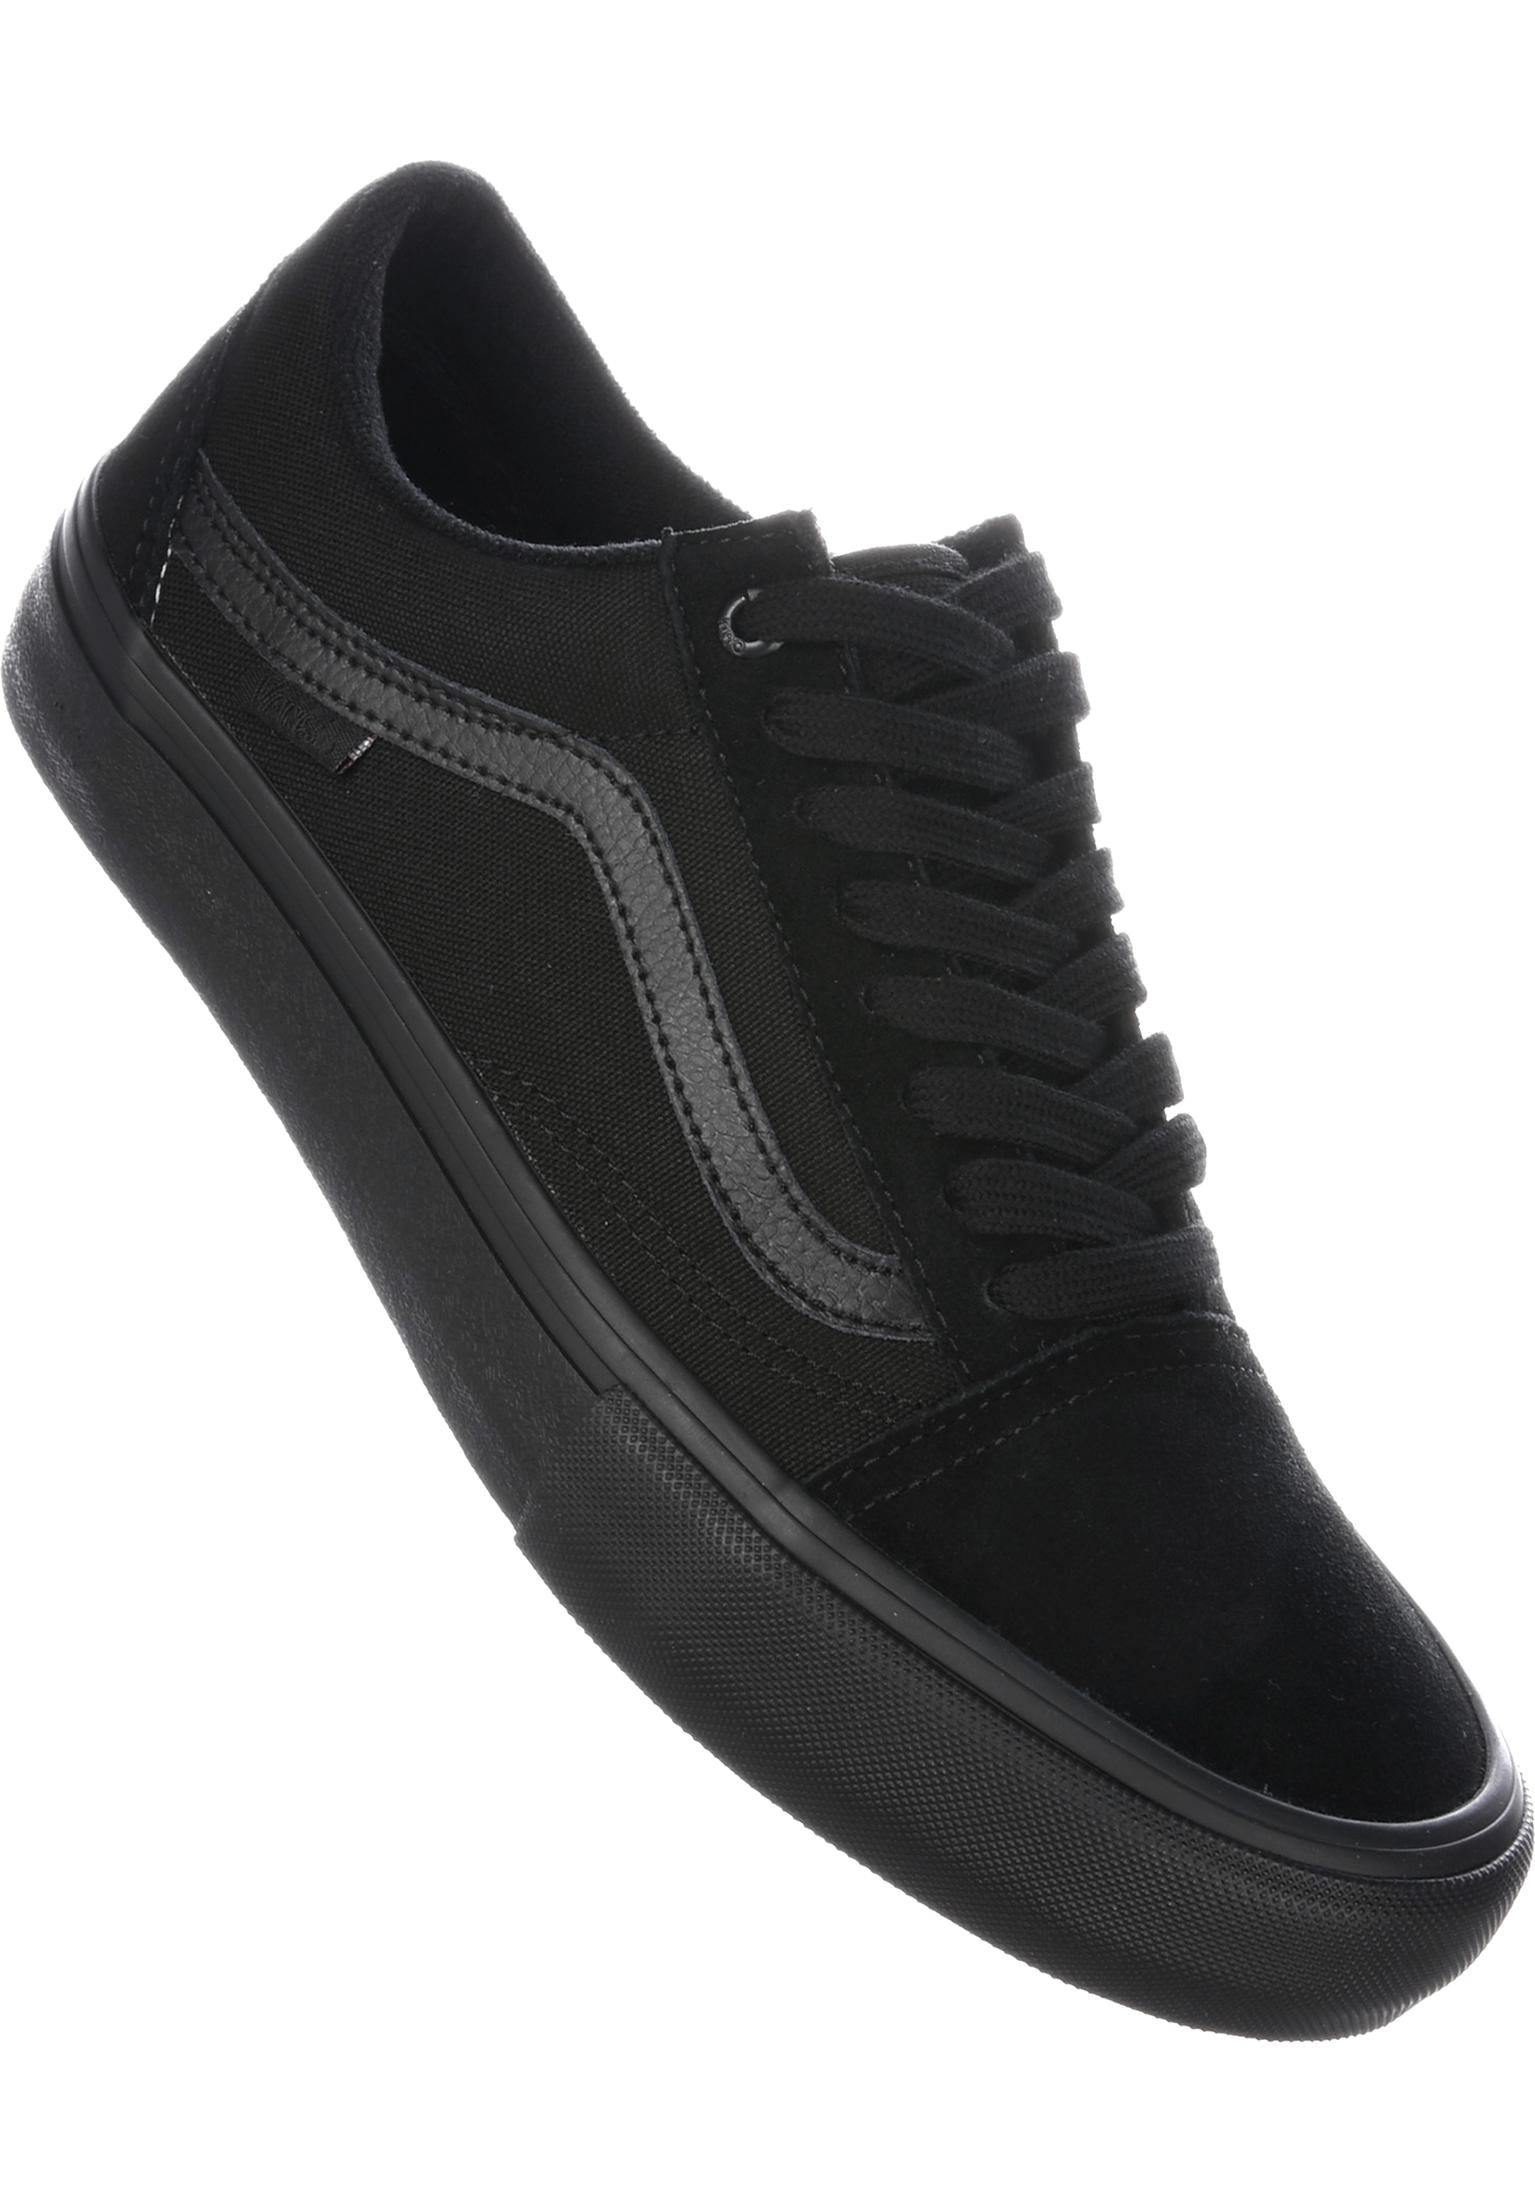 7a6f42a960bc Old Skool Pro Vans All Shoes in blackout for Men